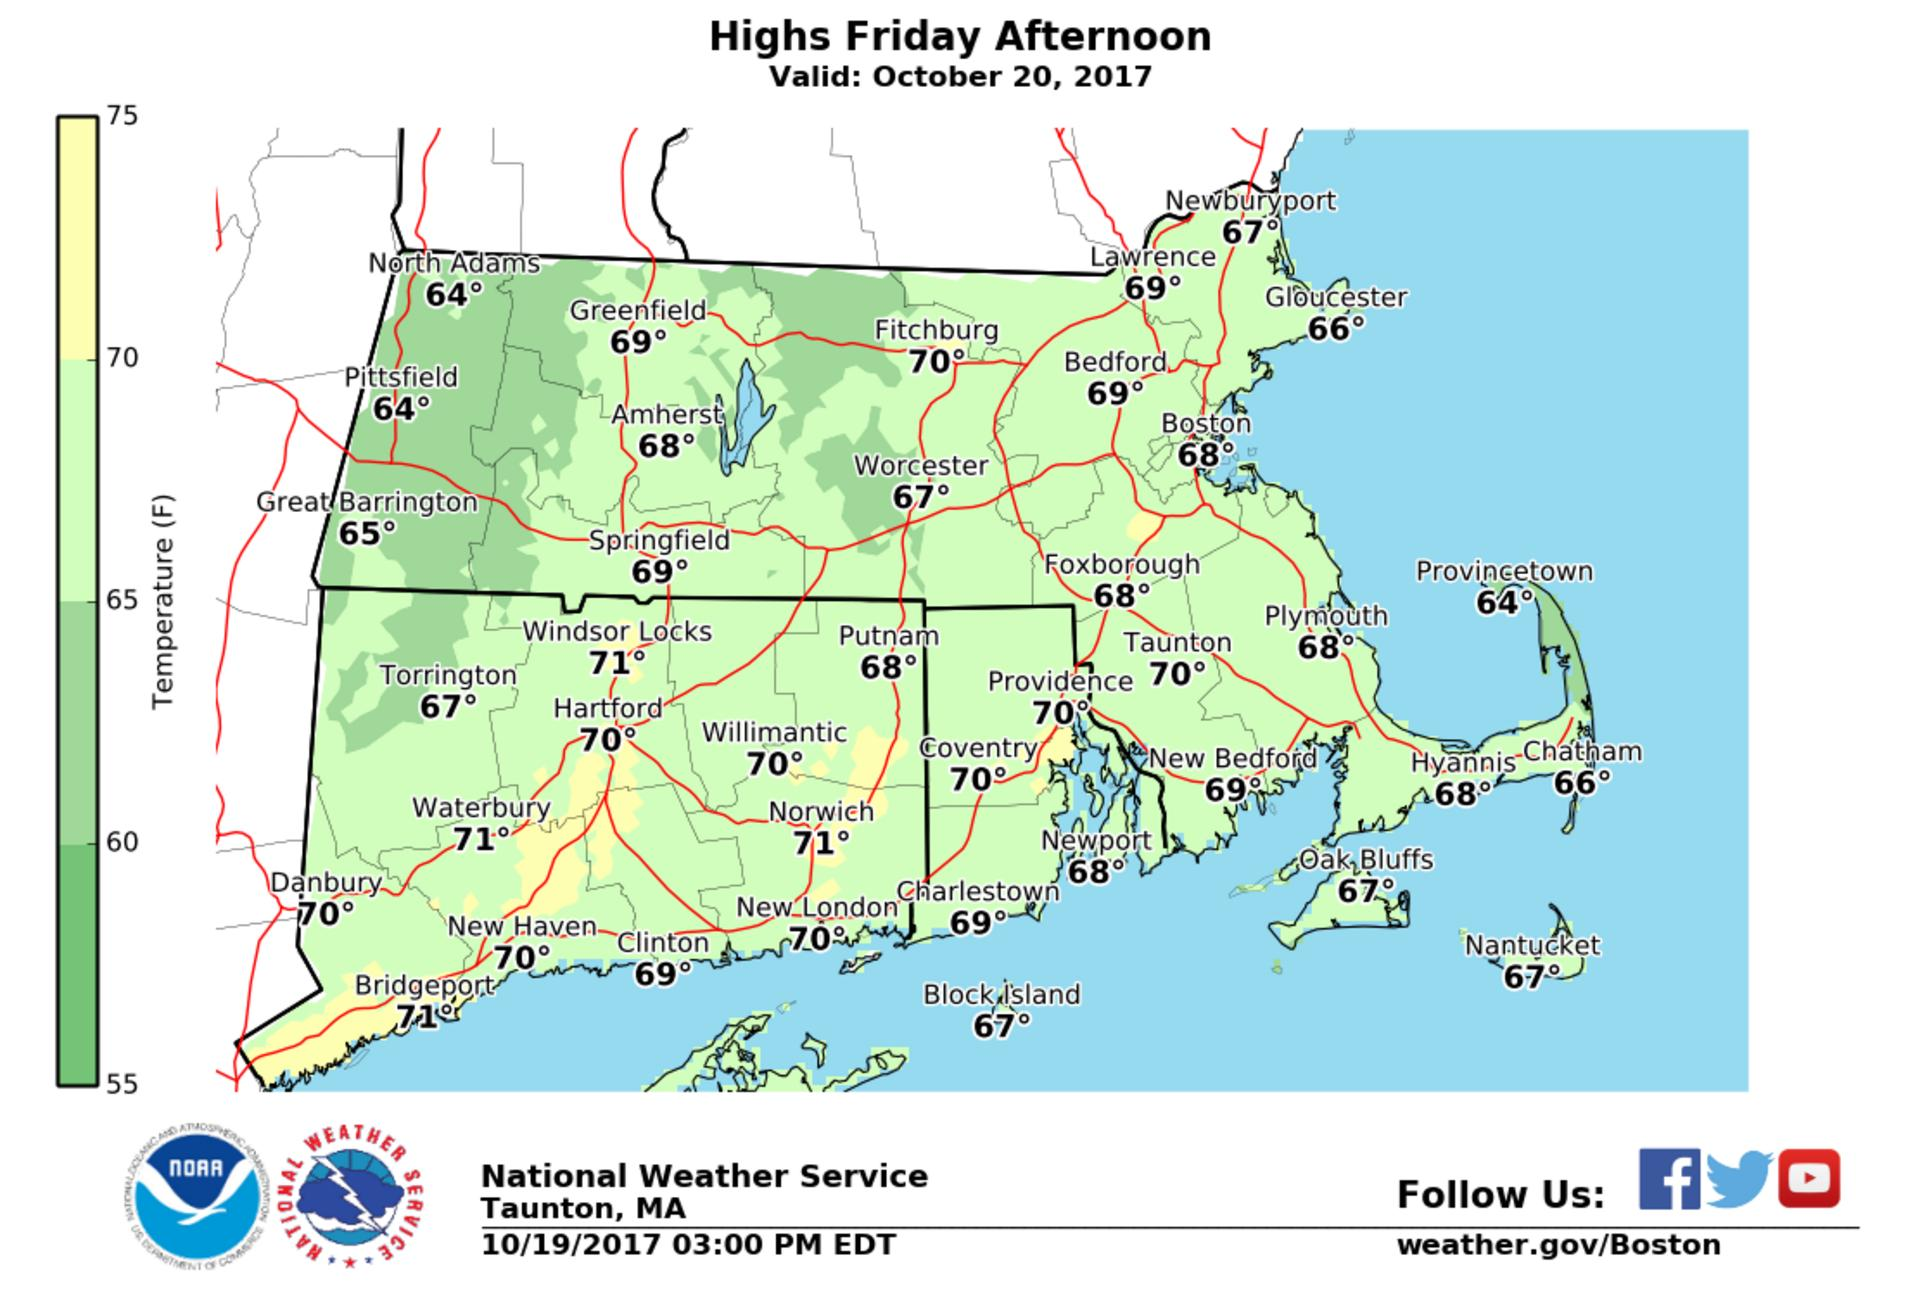 Weekend Weather Forecast Is Looking Good The Boston Globe - Us weather map weekend